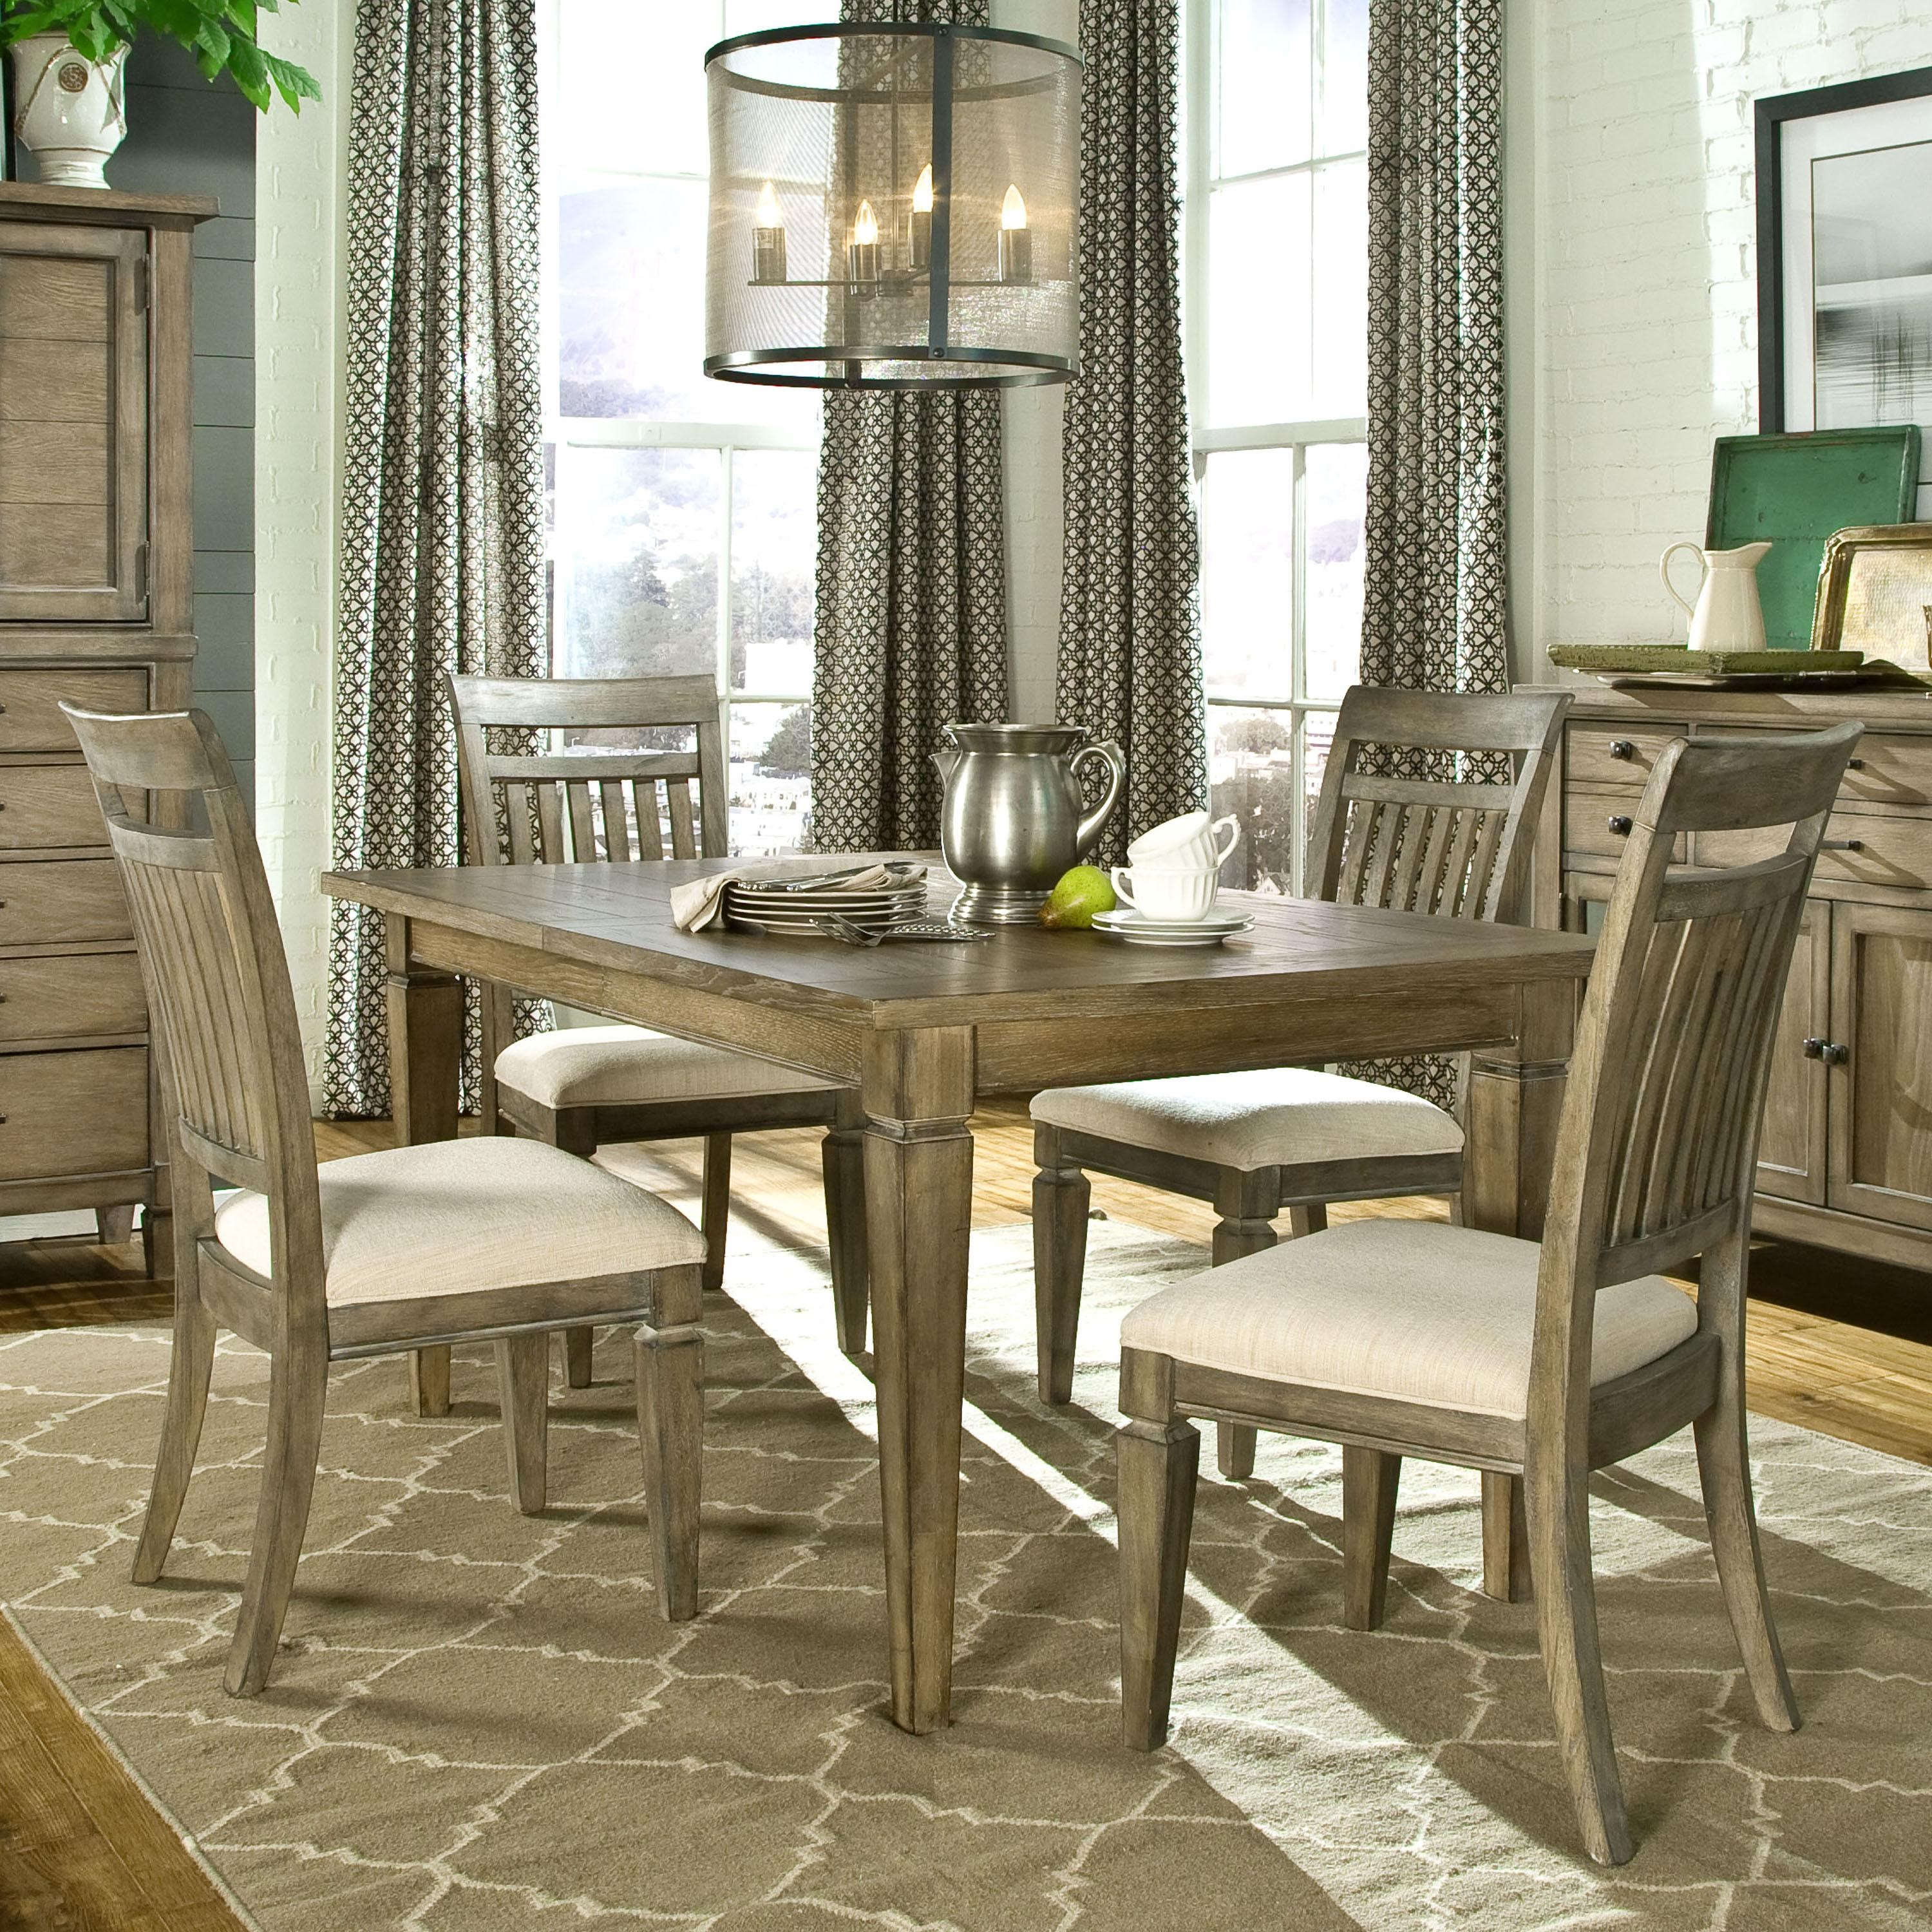 Legacy Classic Brownstone Village 5 Piece Dining Set with  : products2Flegacyclassic2Fcolor2Fbrownstone20village20 208925790802760 1212B4x34020kd b0 from www.furnops.com size 500 x 500 jpeg 81kB